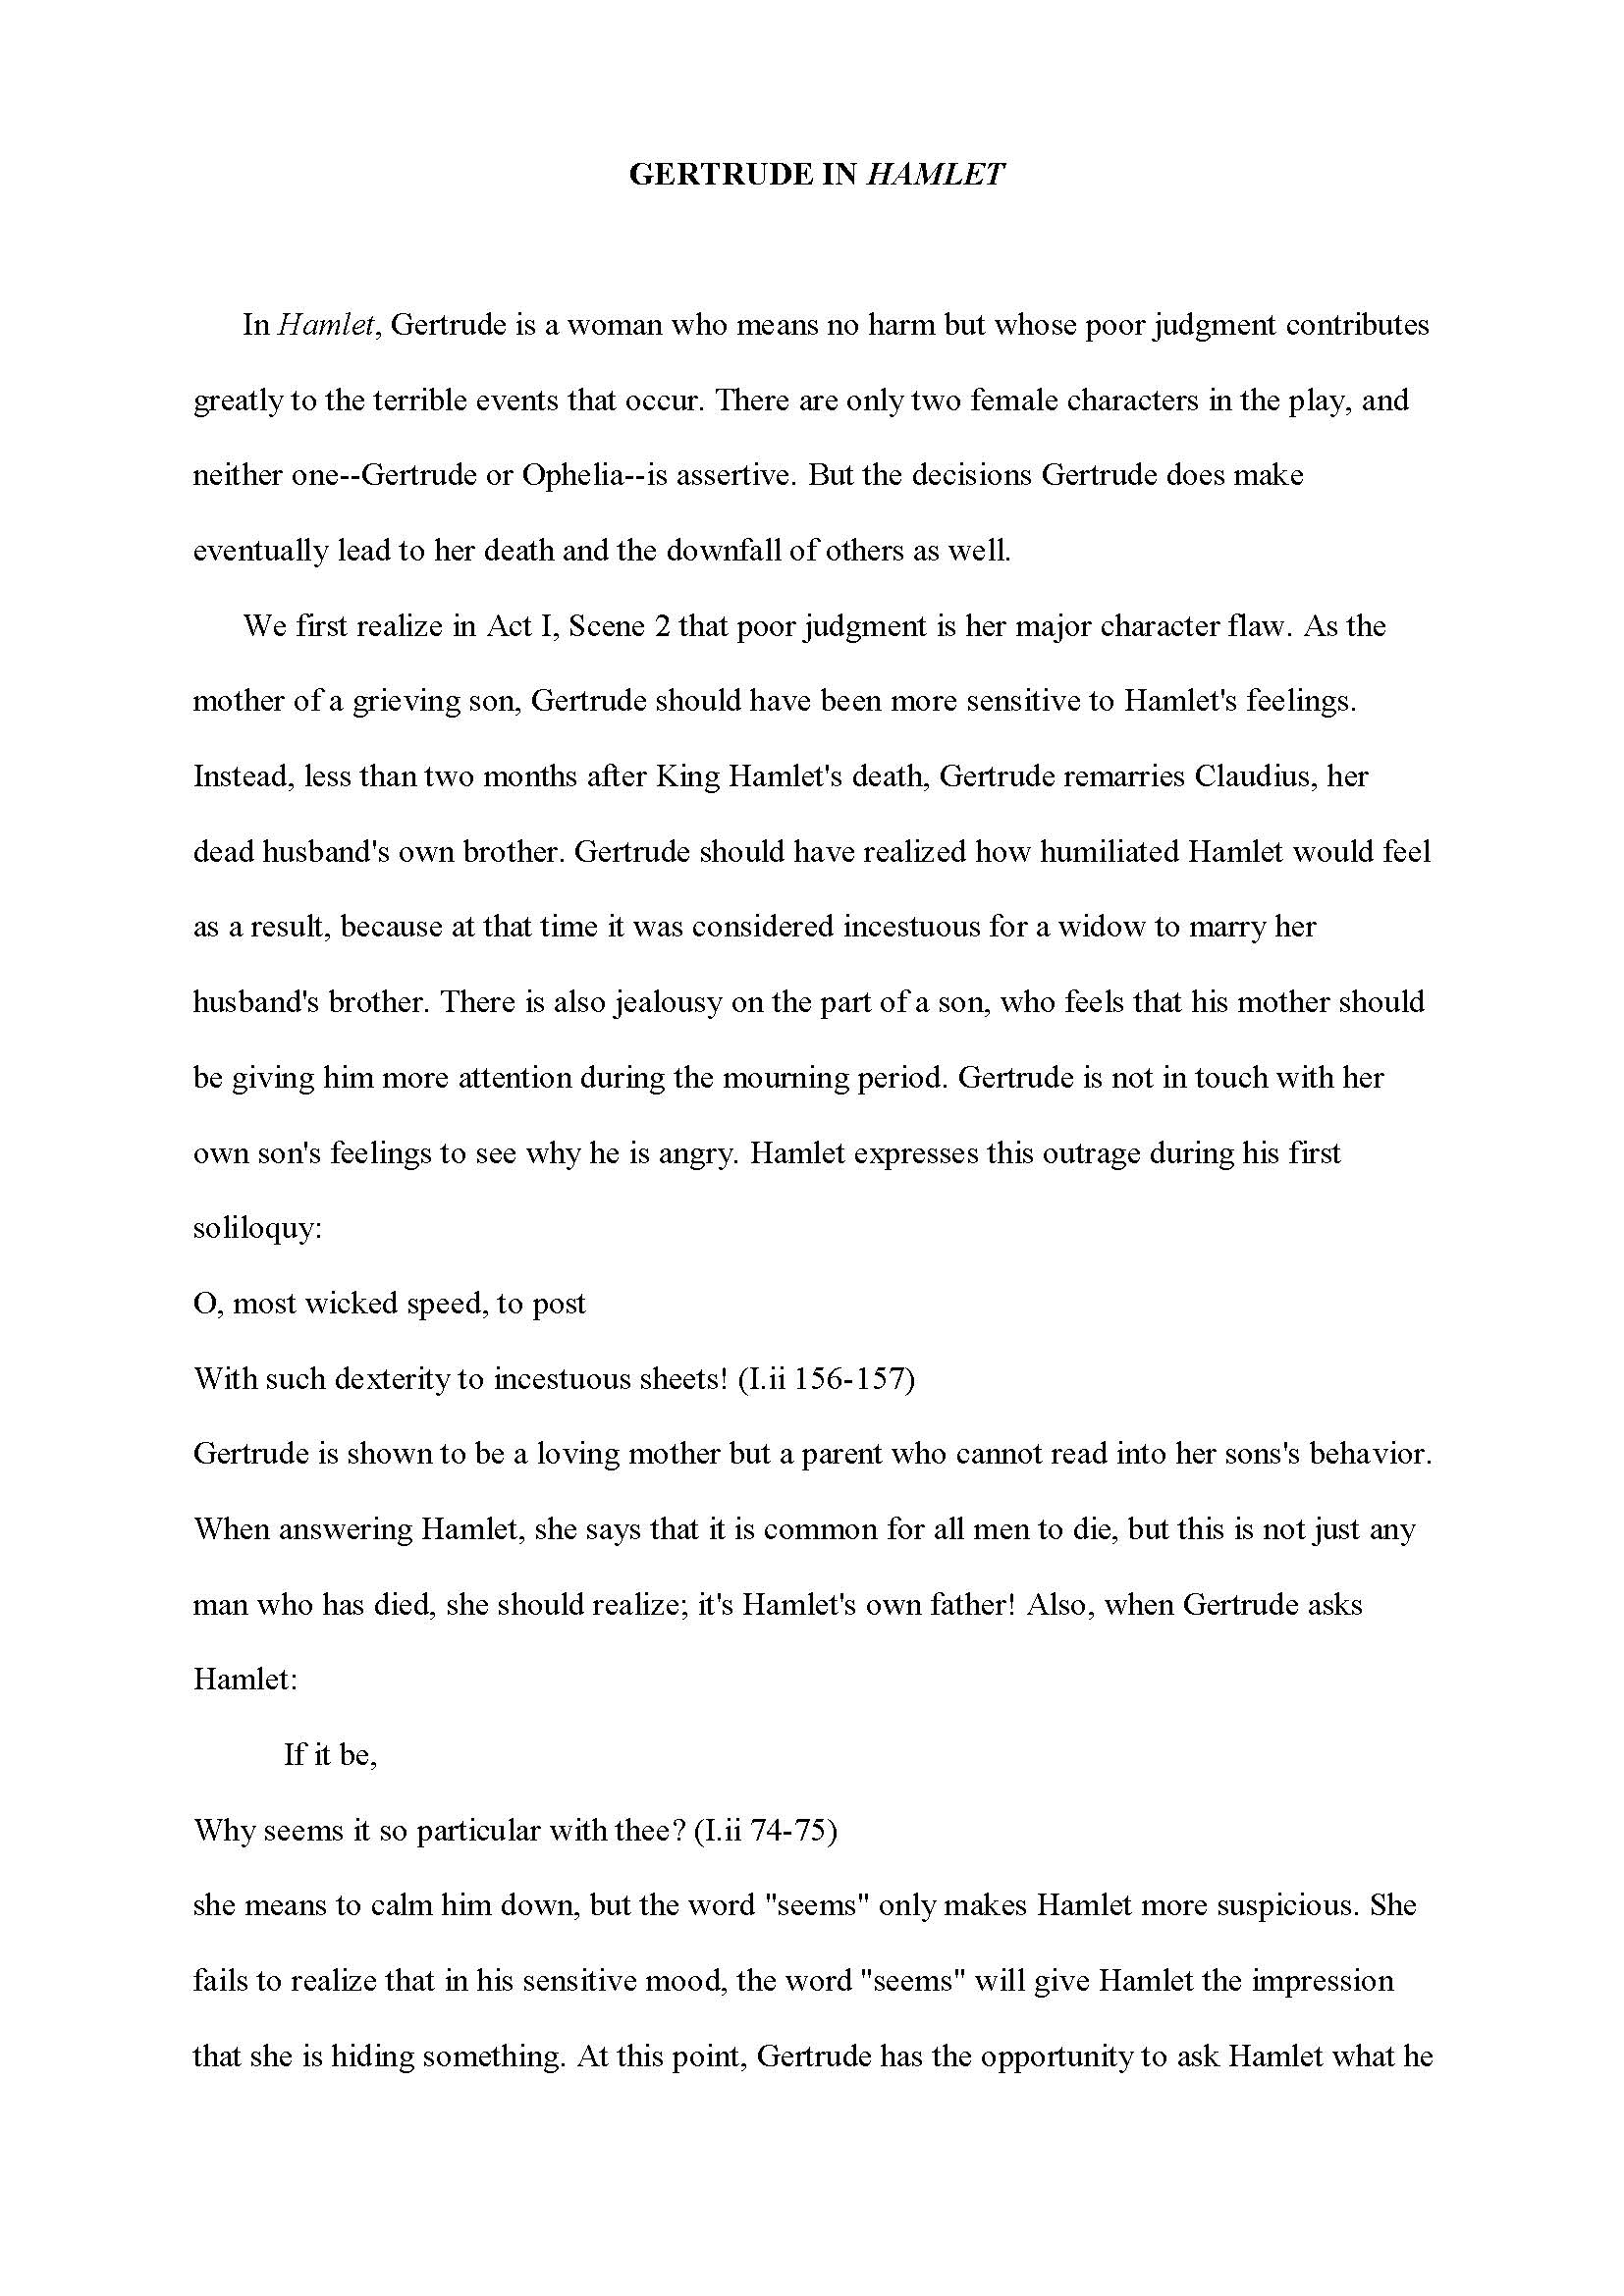 014 Analysis Essay Sample Example Literary Excellent Criticism On The Great Gatsby Ideas Conclusion Full